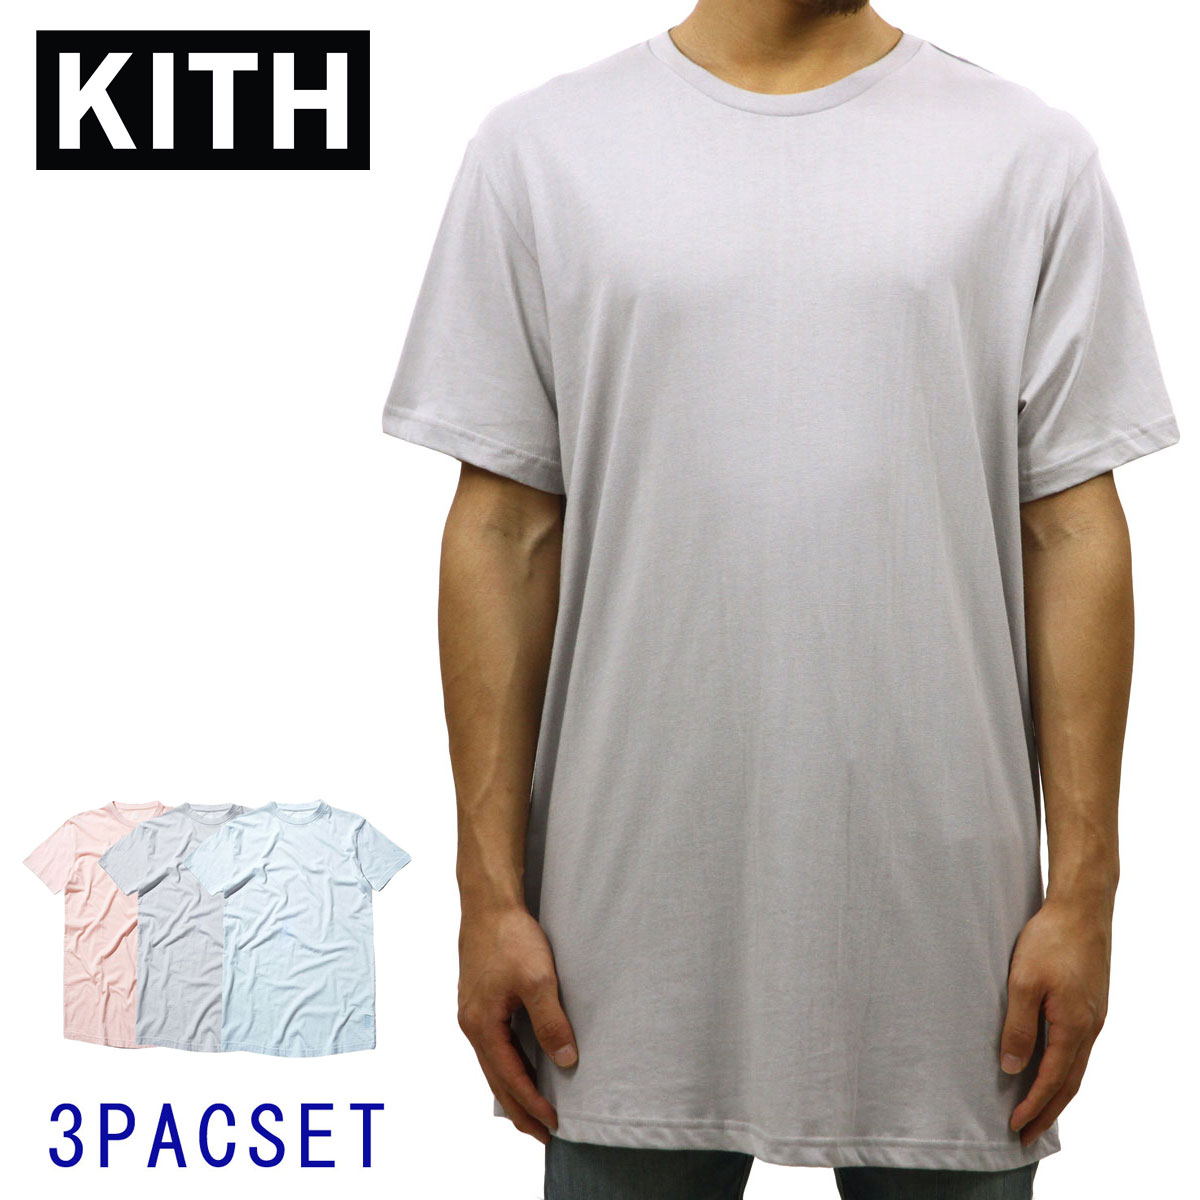 d0ac5189939d Kiss KITH regular article men short sleeves T-shirt KITH CLASSICS  UNDERSHIRT 3-PACK ...